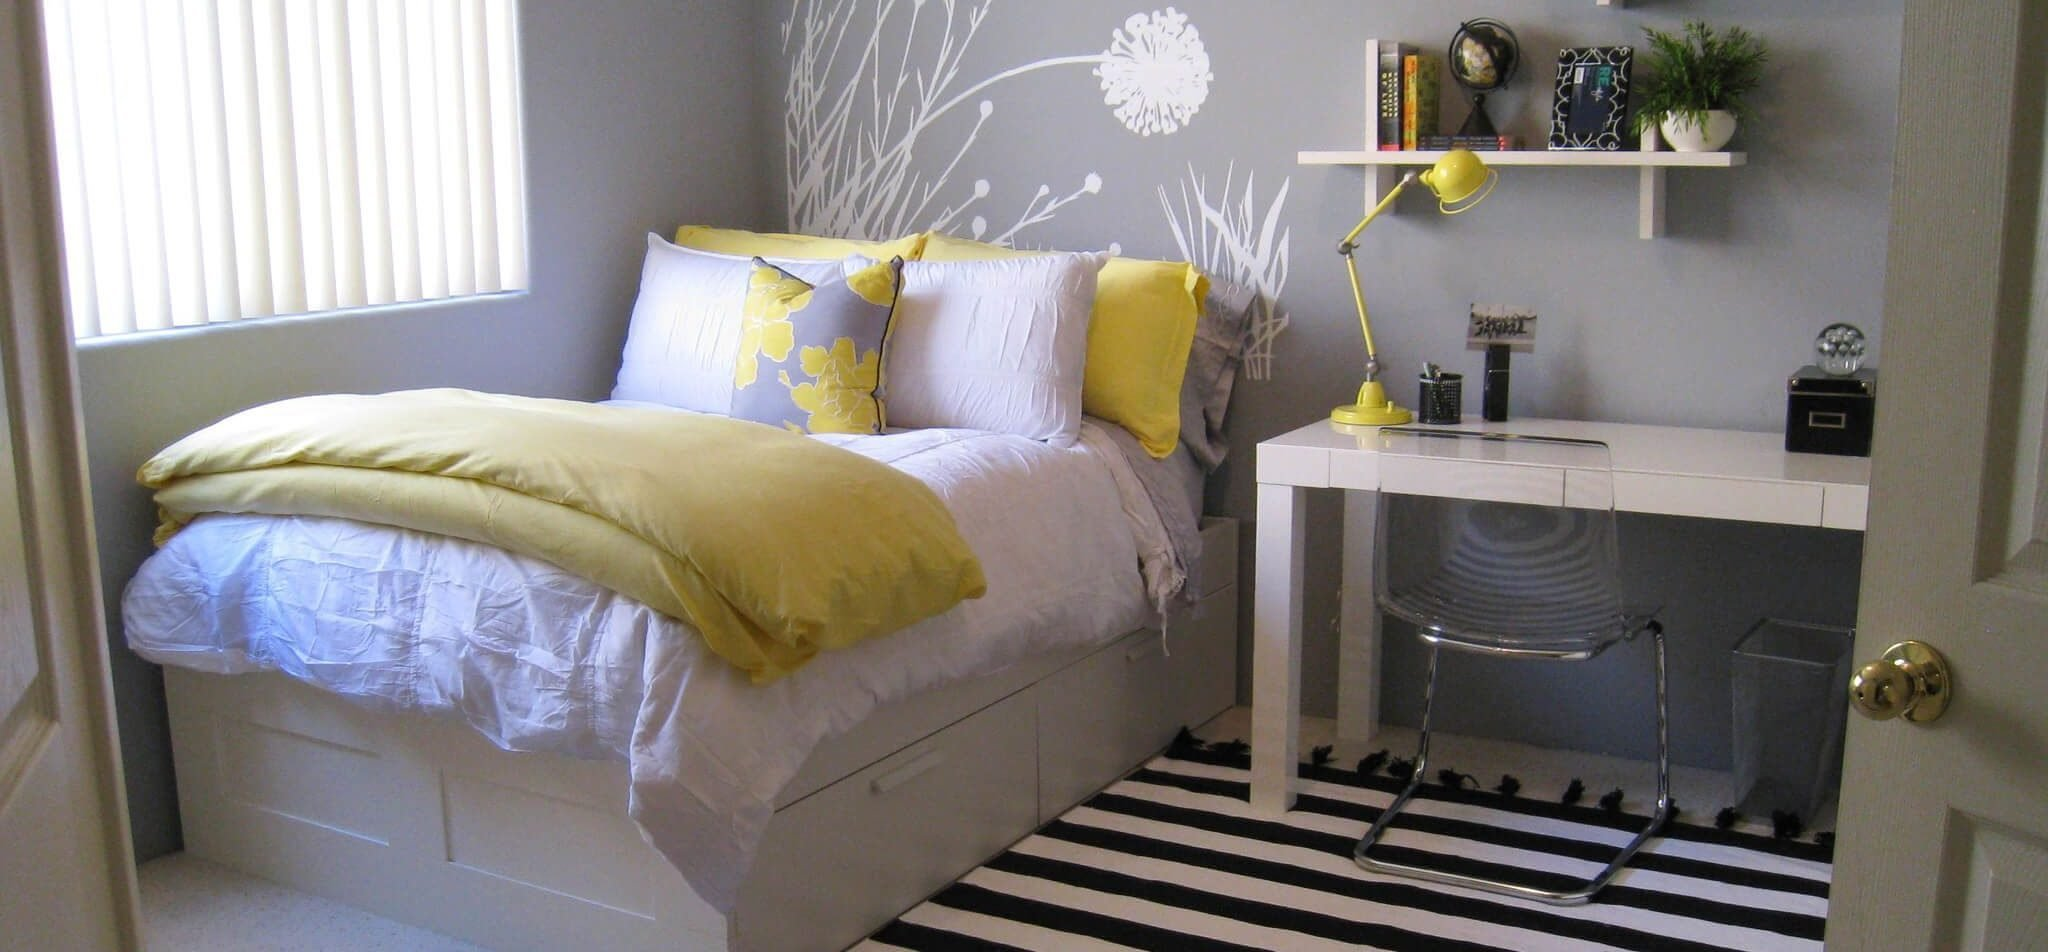 Best 24 Best Bedroom Decoration Ideas For Women On A Budget With Pictures